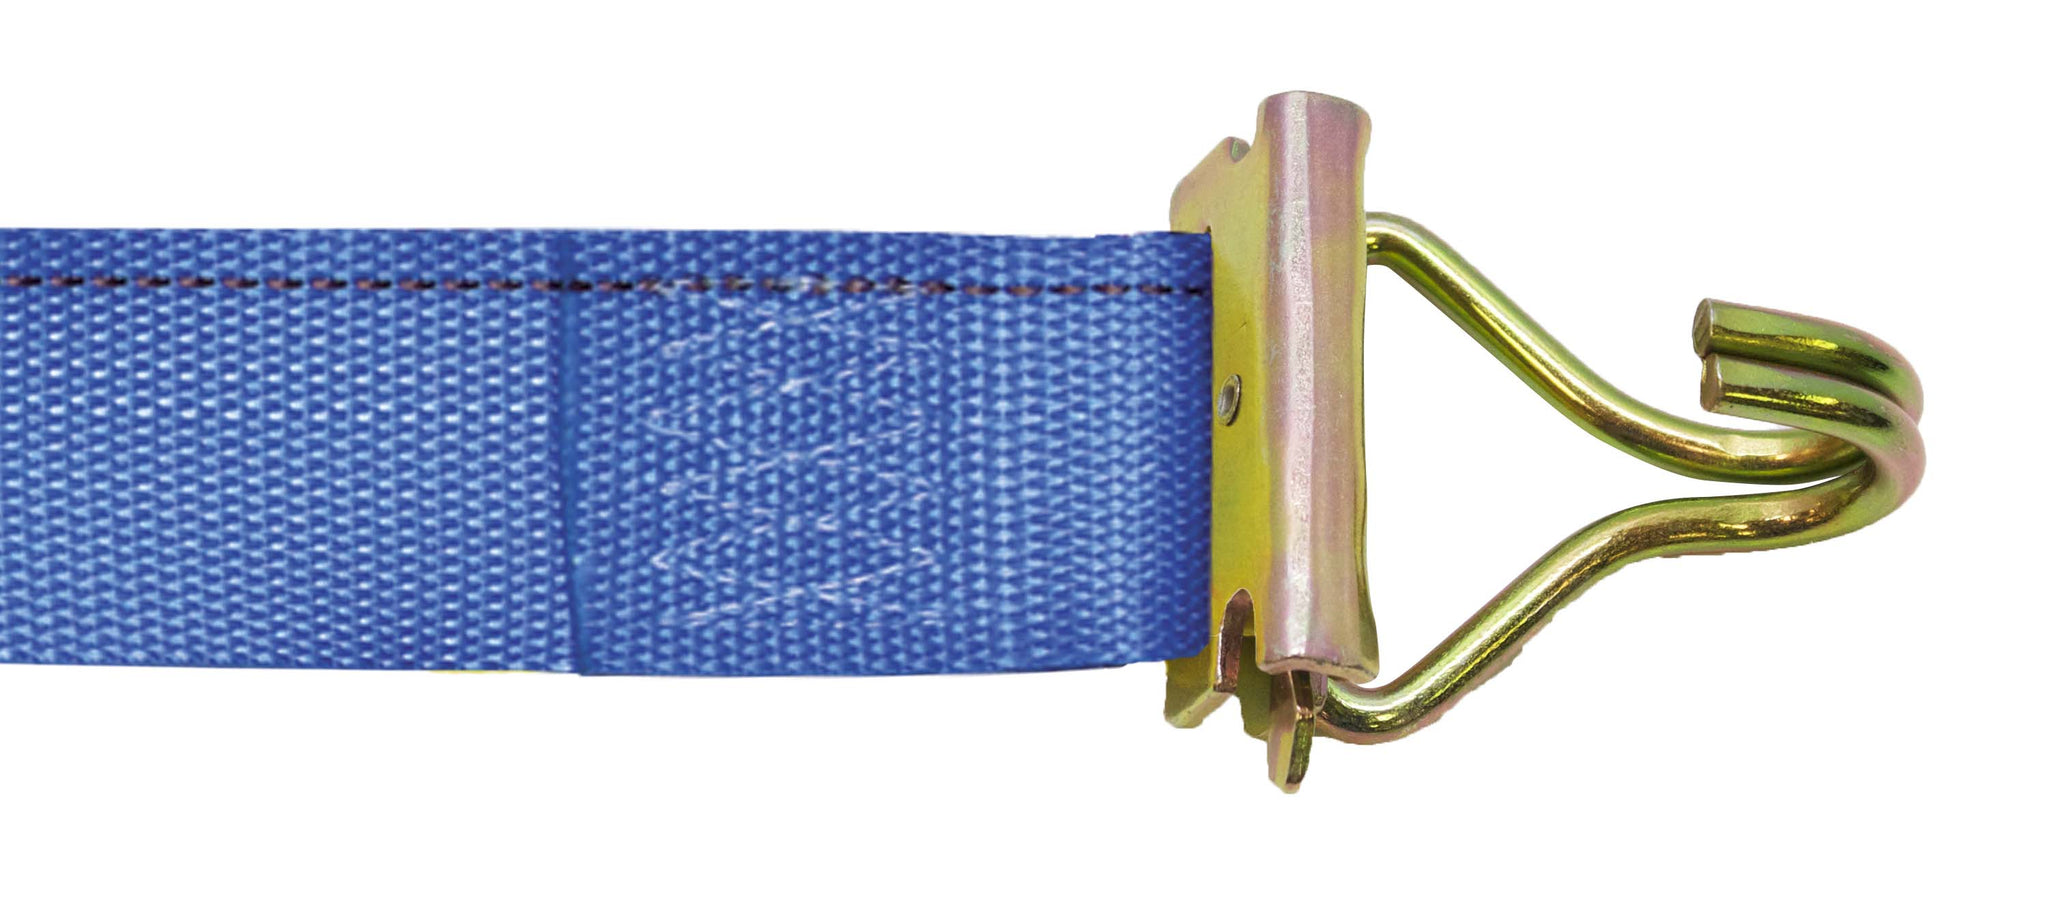 "CAM BUCKLE STRAP 2""X20' WITH E-FITTINGS & F WIRE HOOKS"